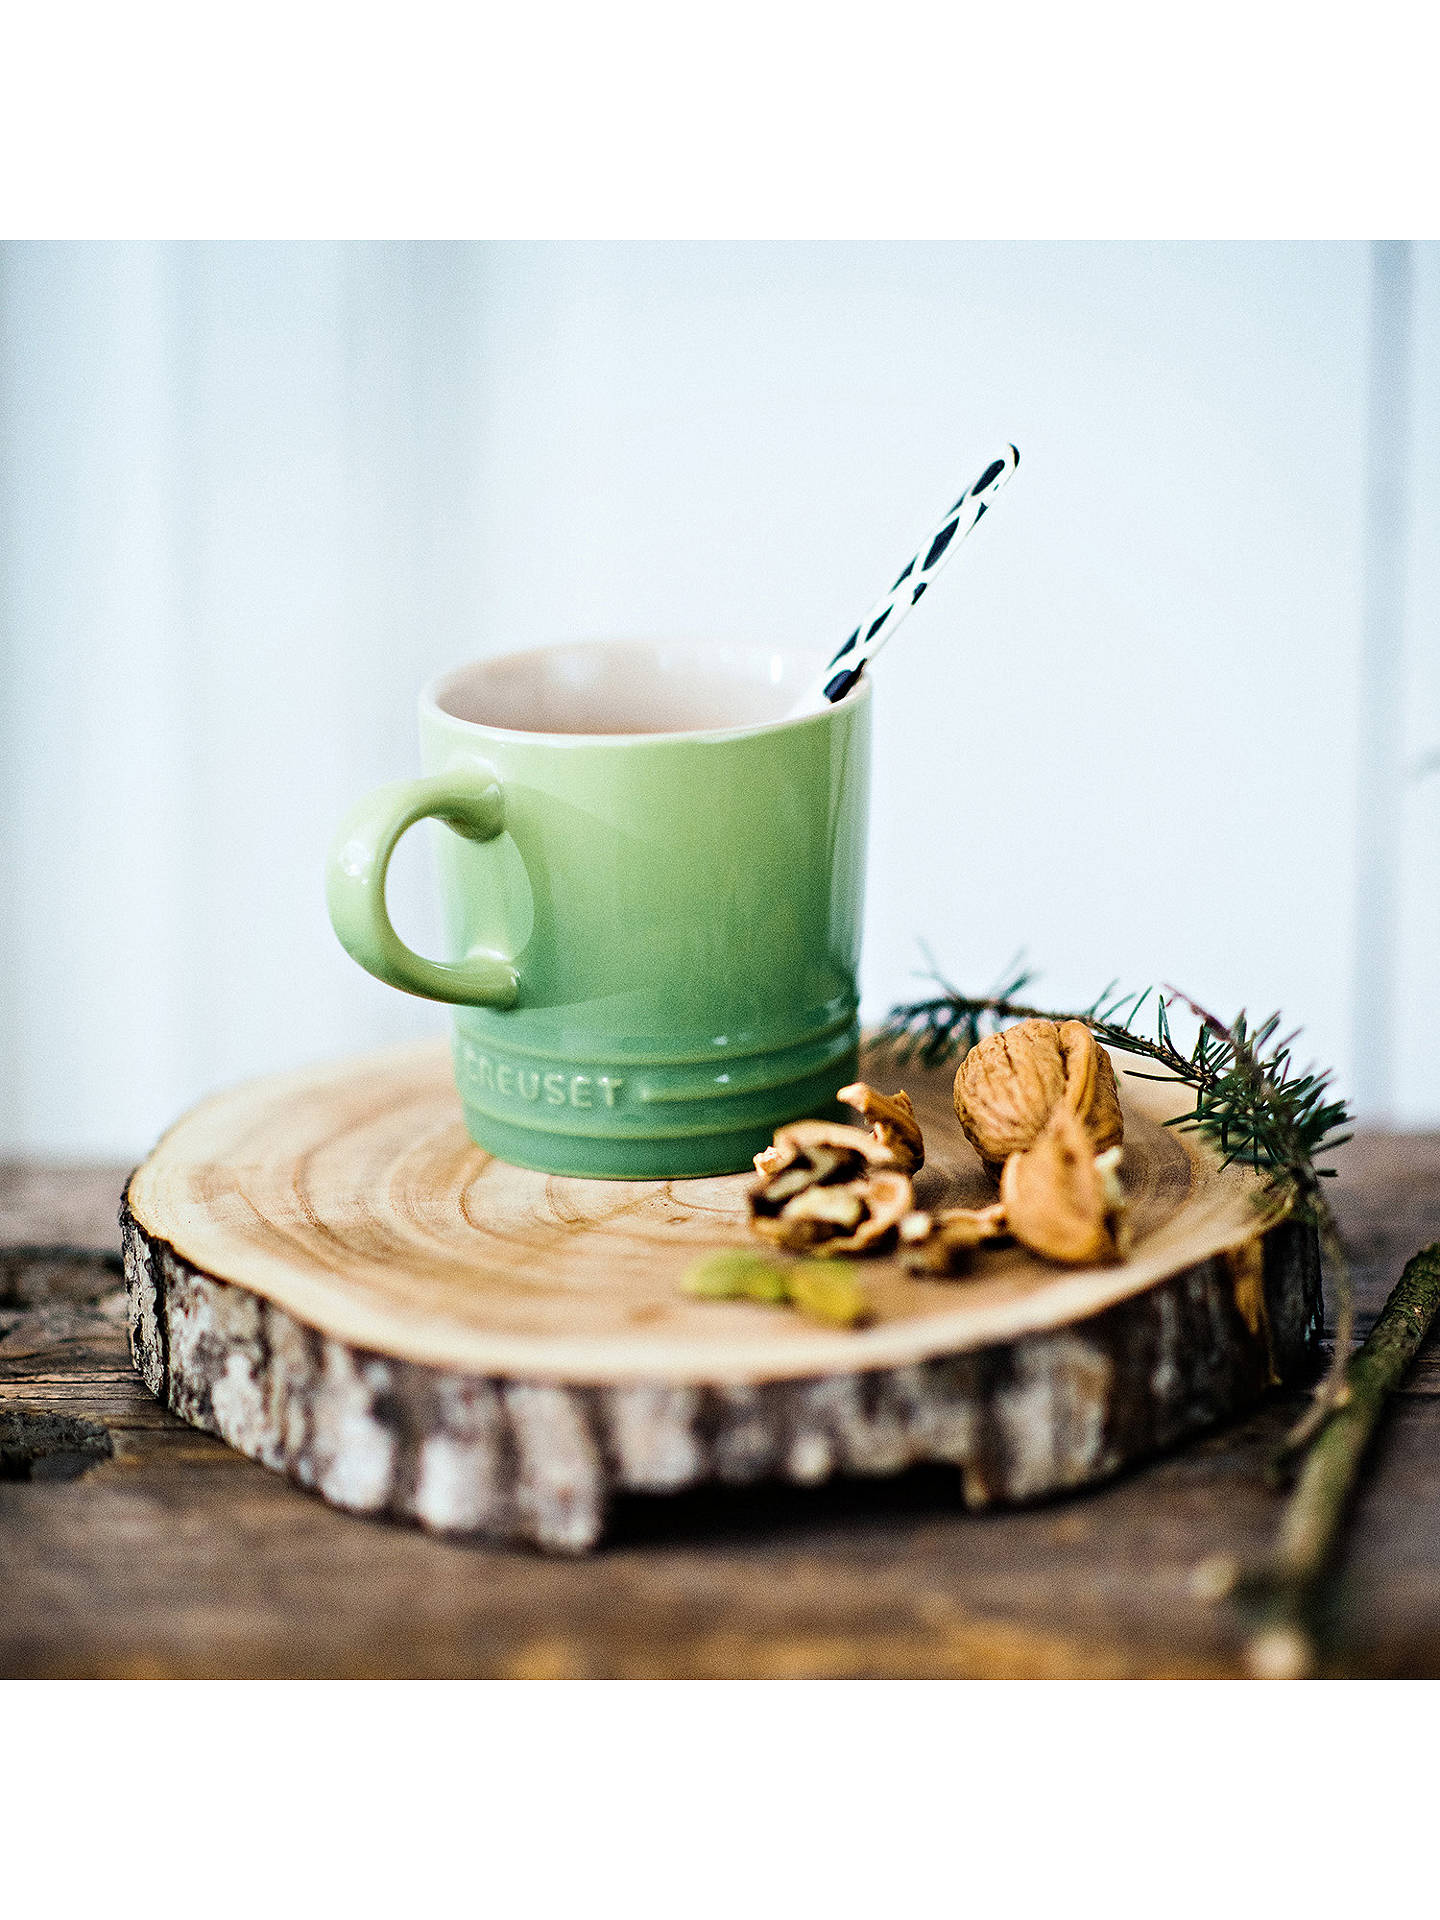 Buy Le Creuset Stoneware Espresso Mug, 100ml, Rosemary Online at johnlewis.com